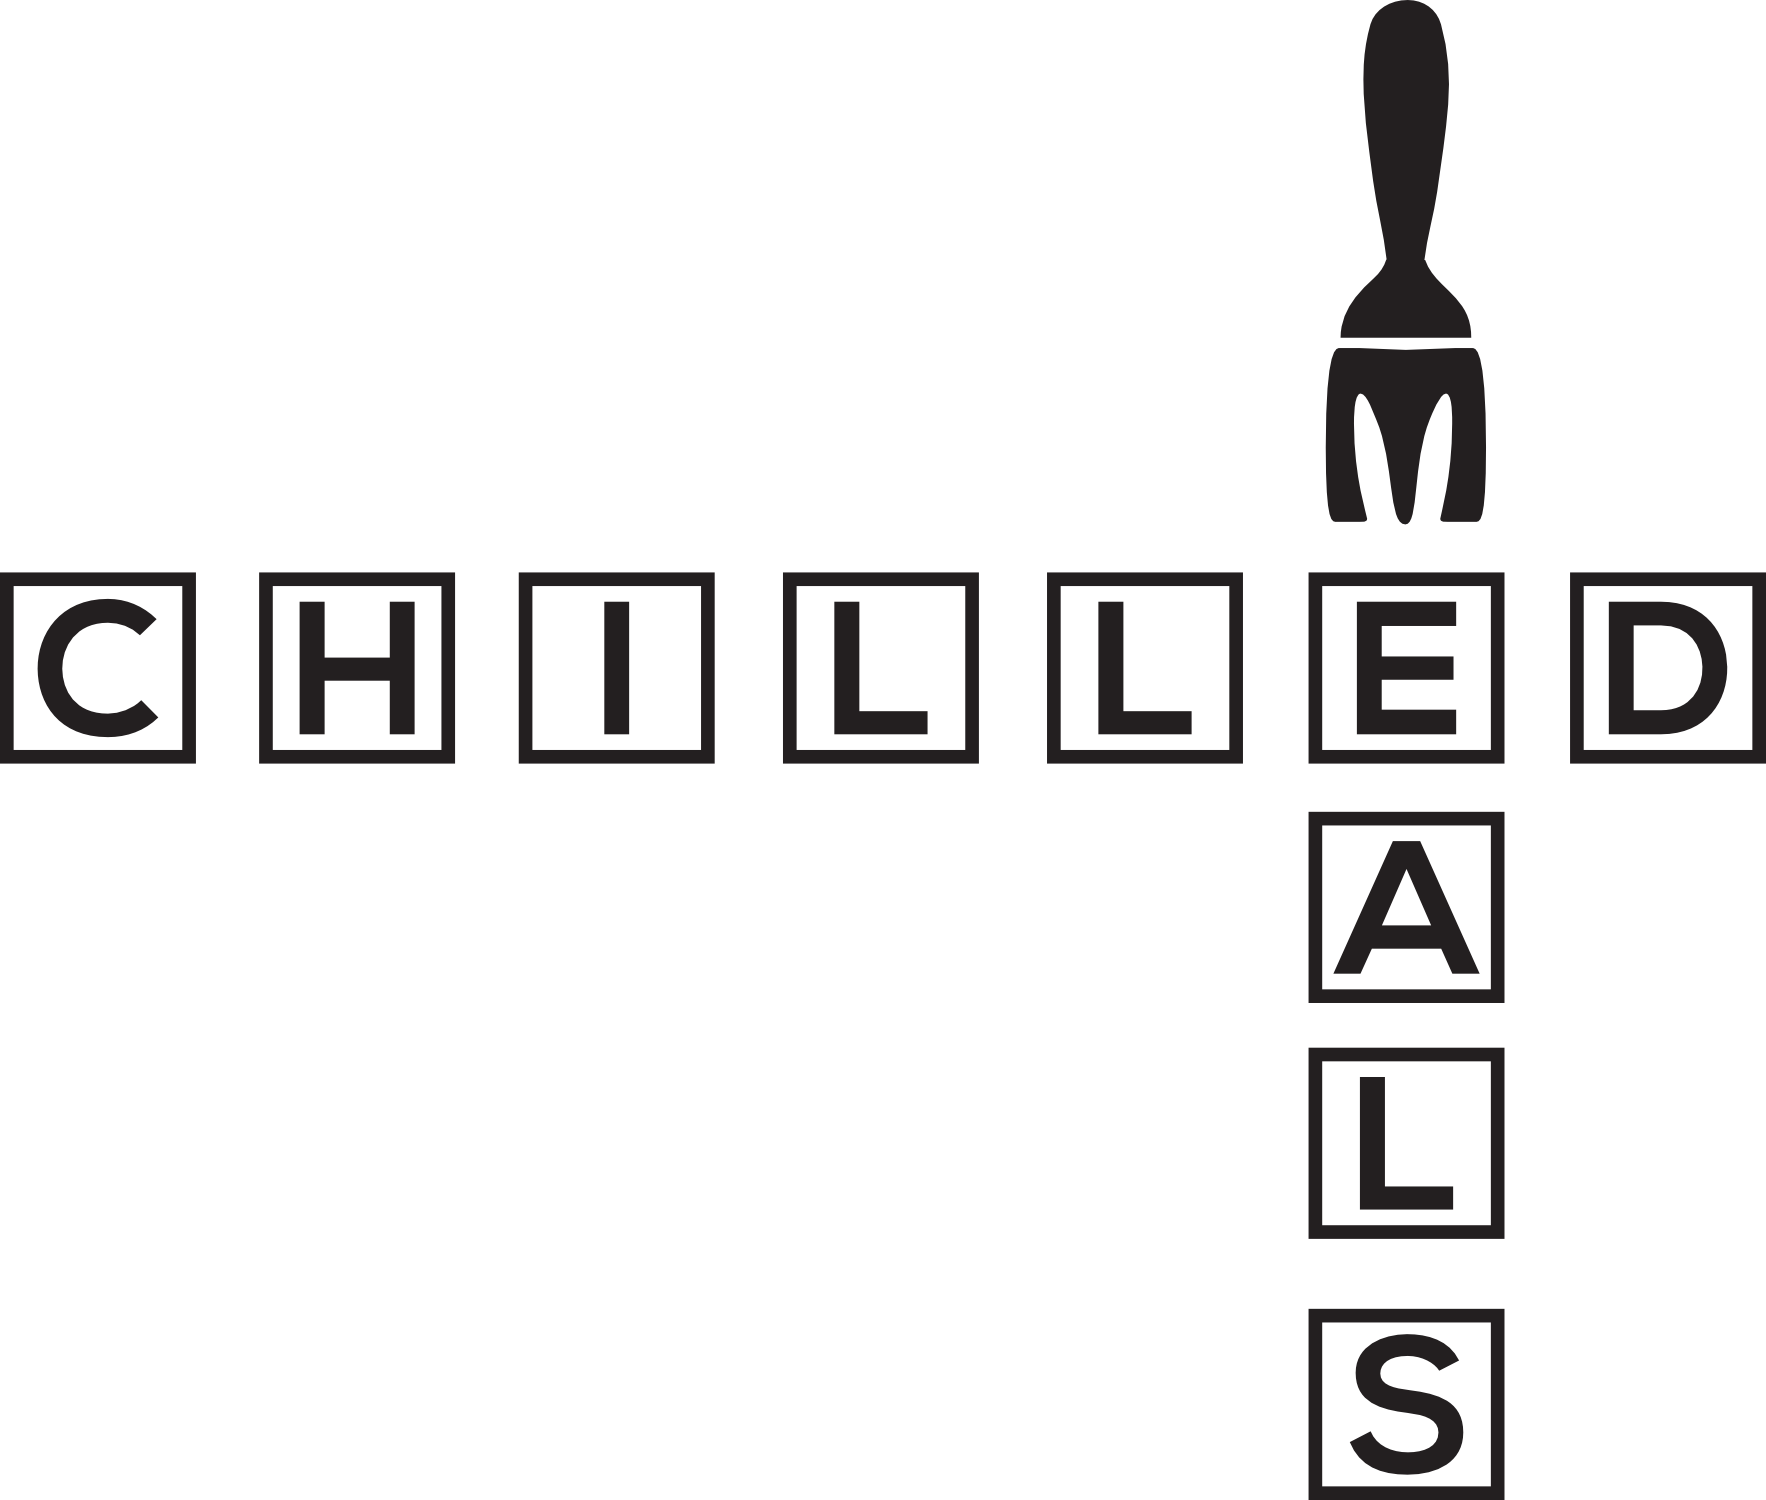 Chilled Meals Logo